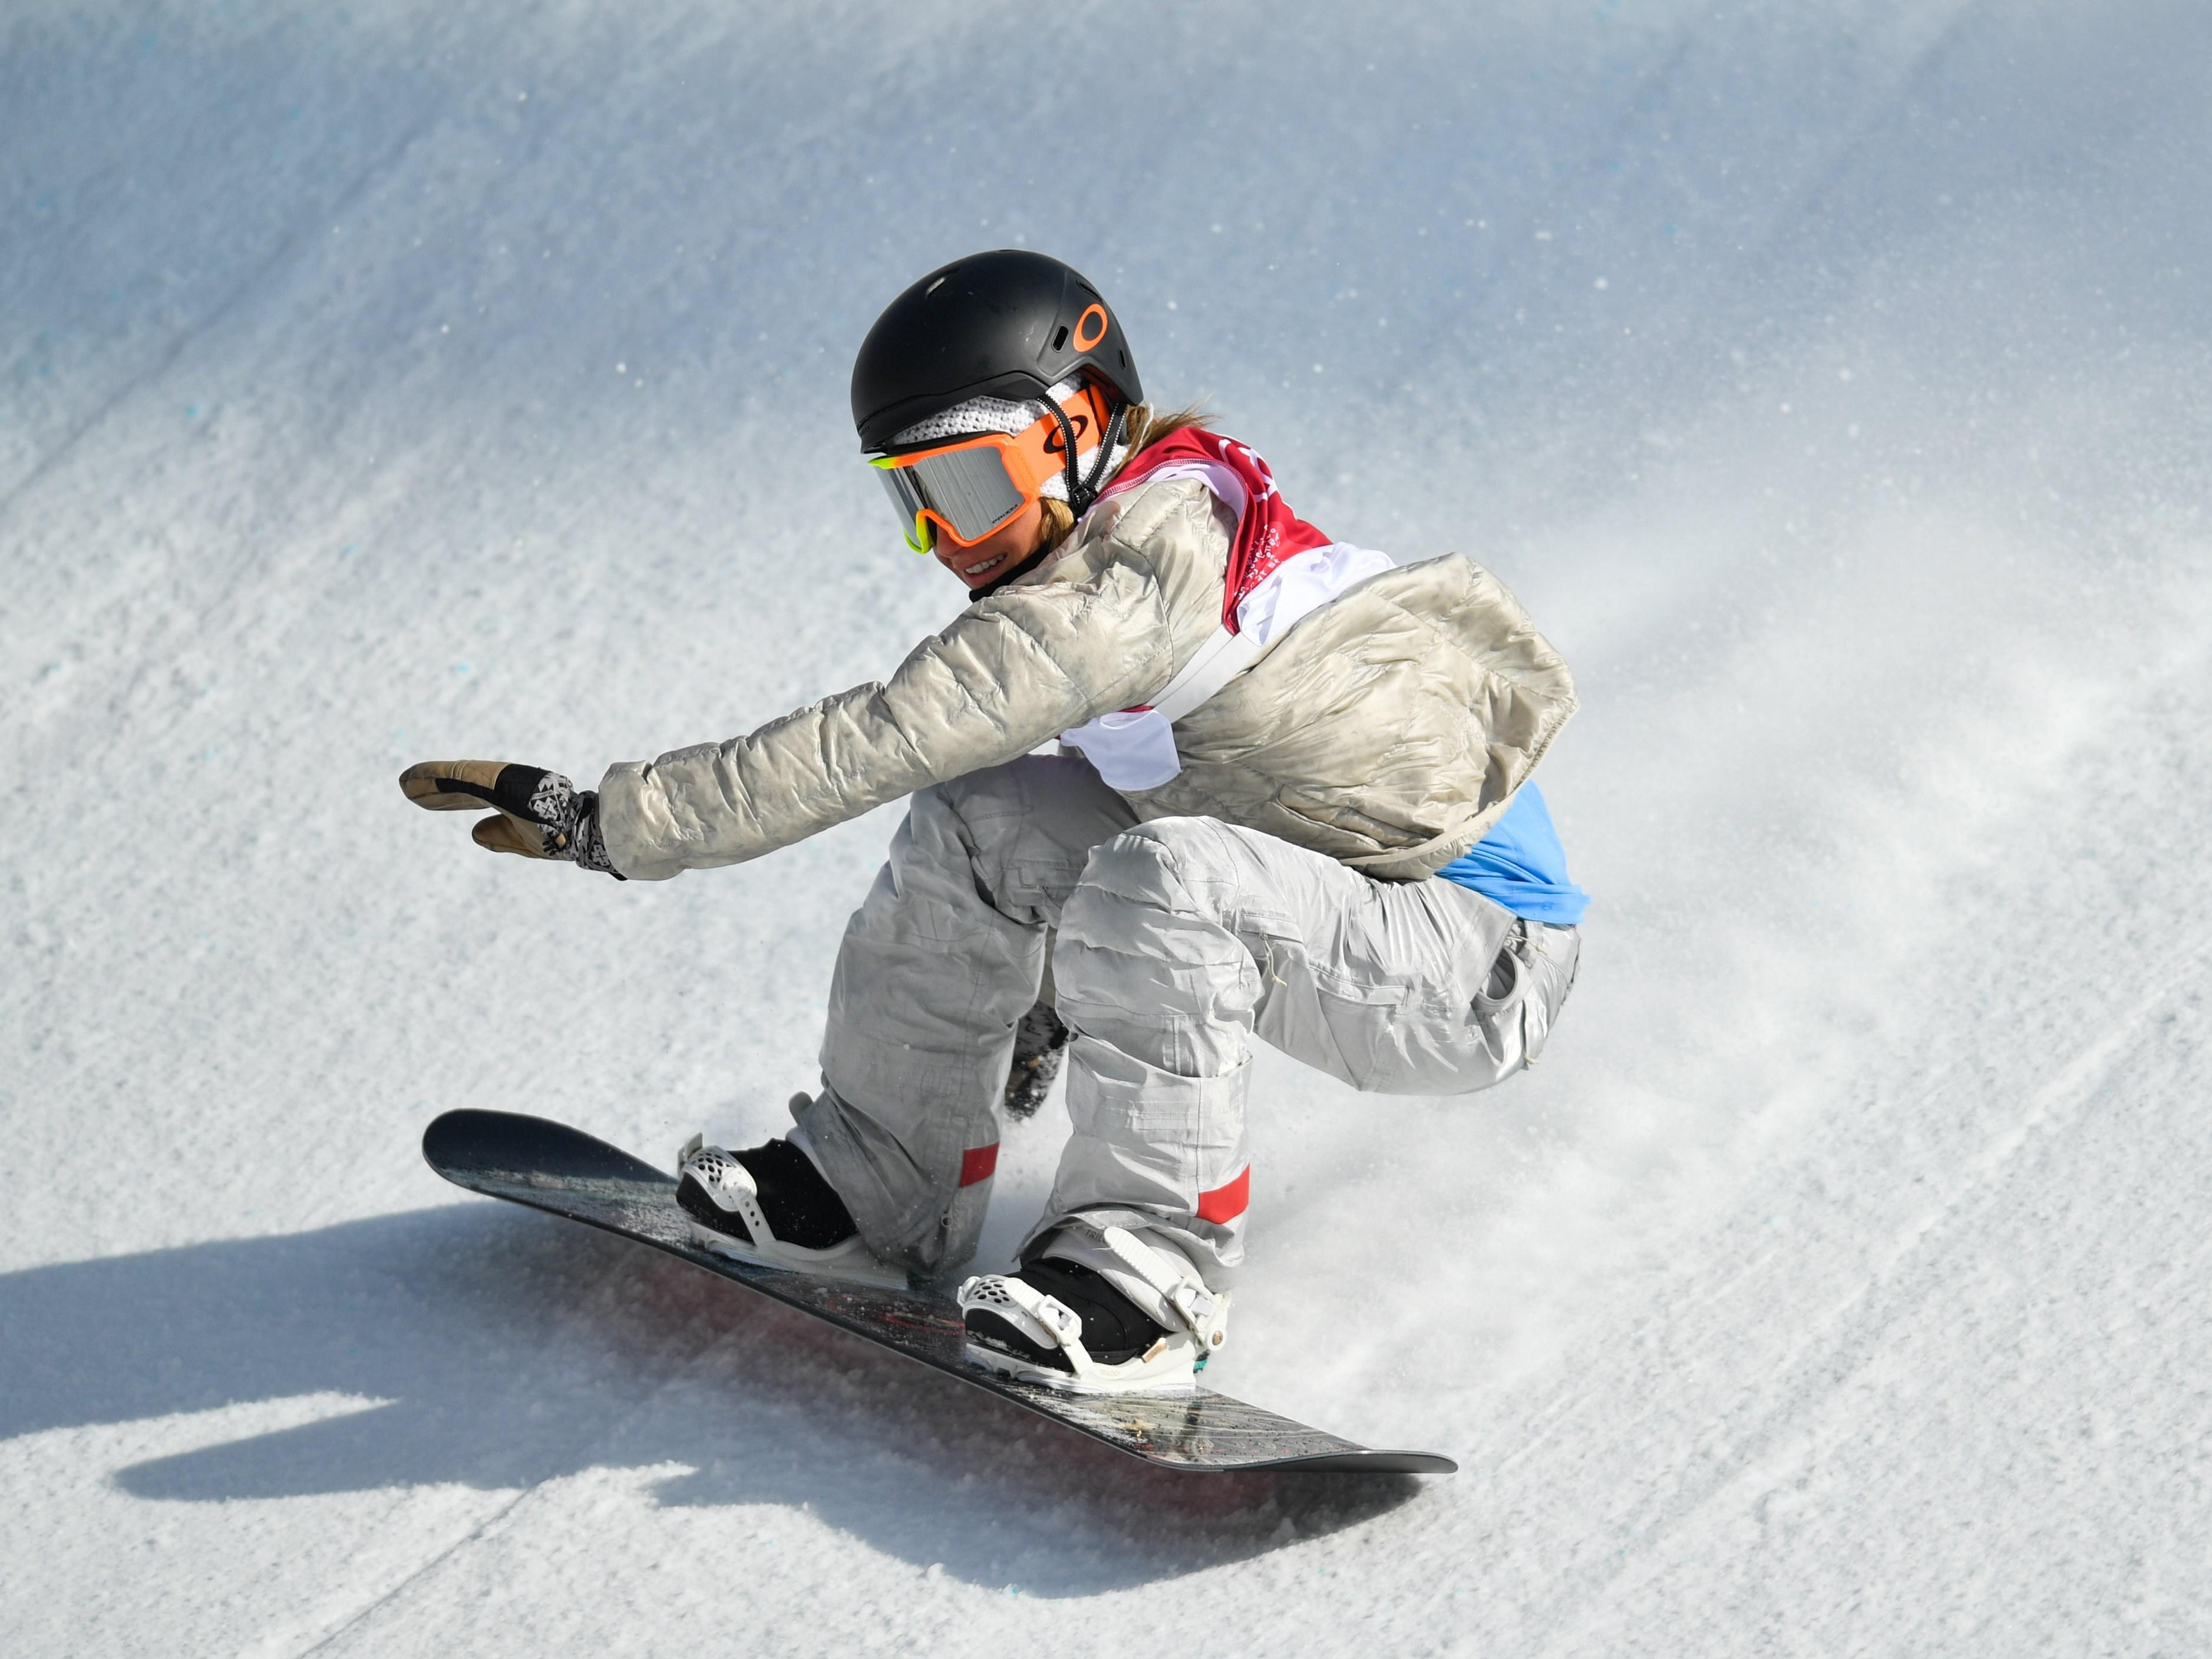 all about big air the newest olympic snowboarding event